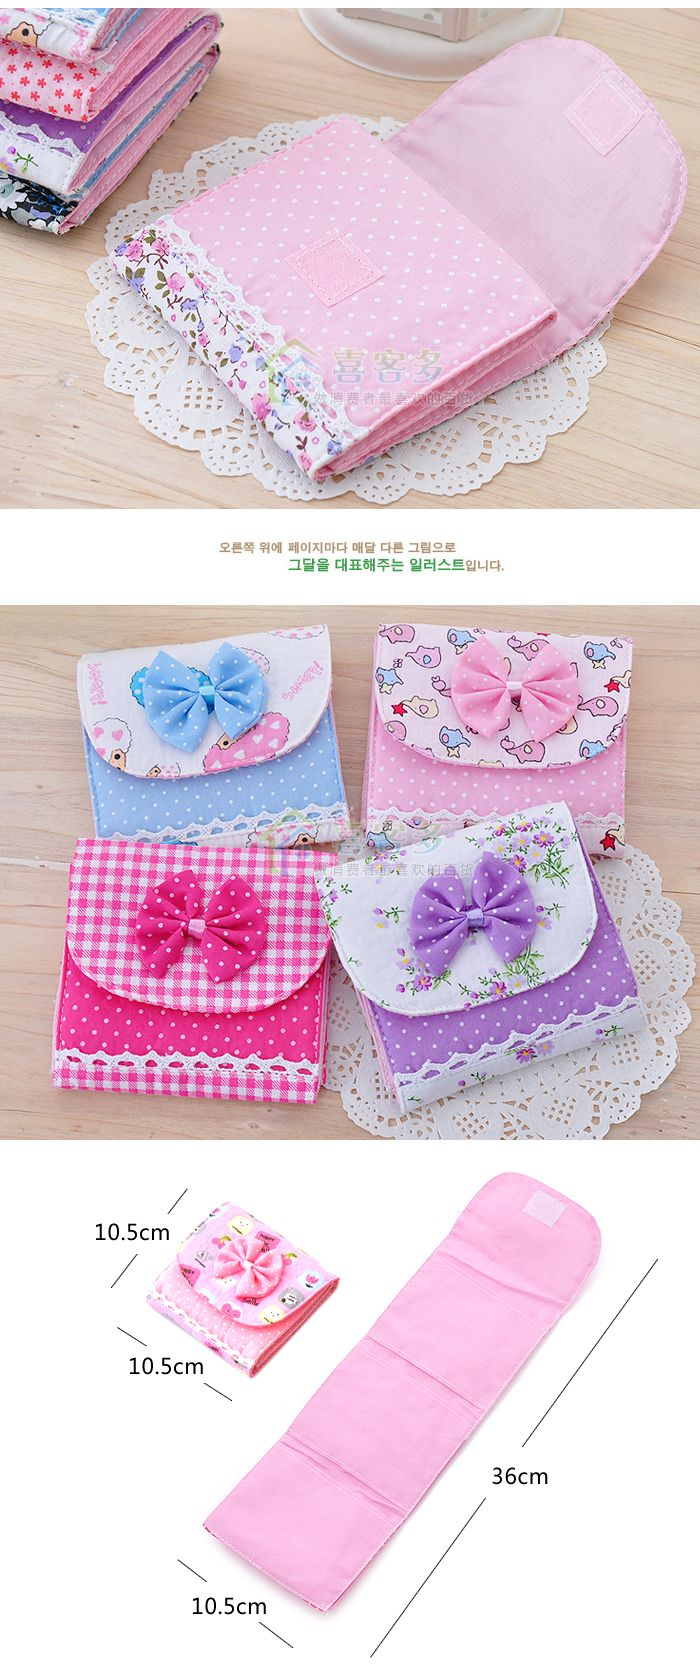 New Lovely Girlish Sanitary Napkins Pads Carrying Easy Bag Small Articles Gather Pouch Case Bag Dropshipping Paquet De Stockage #Affiliate